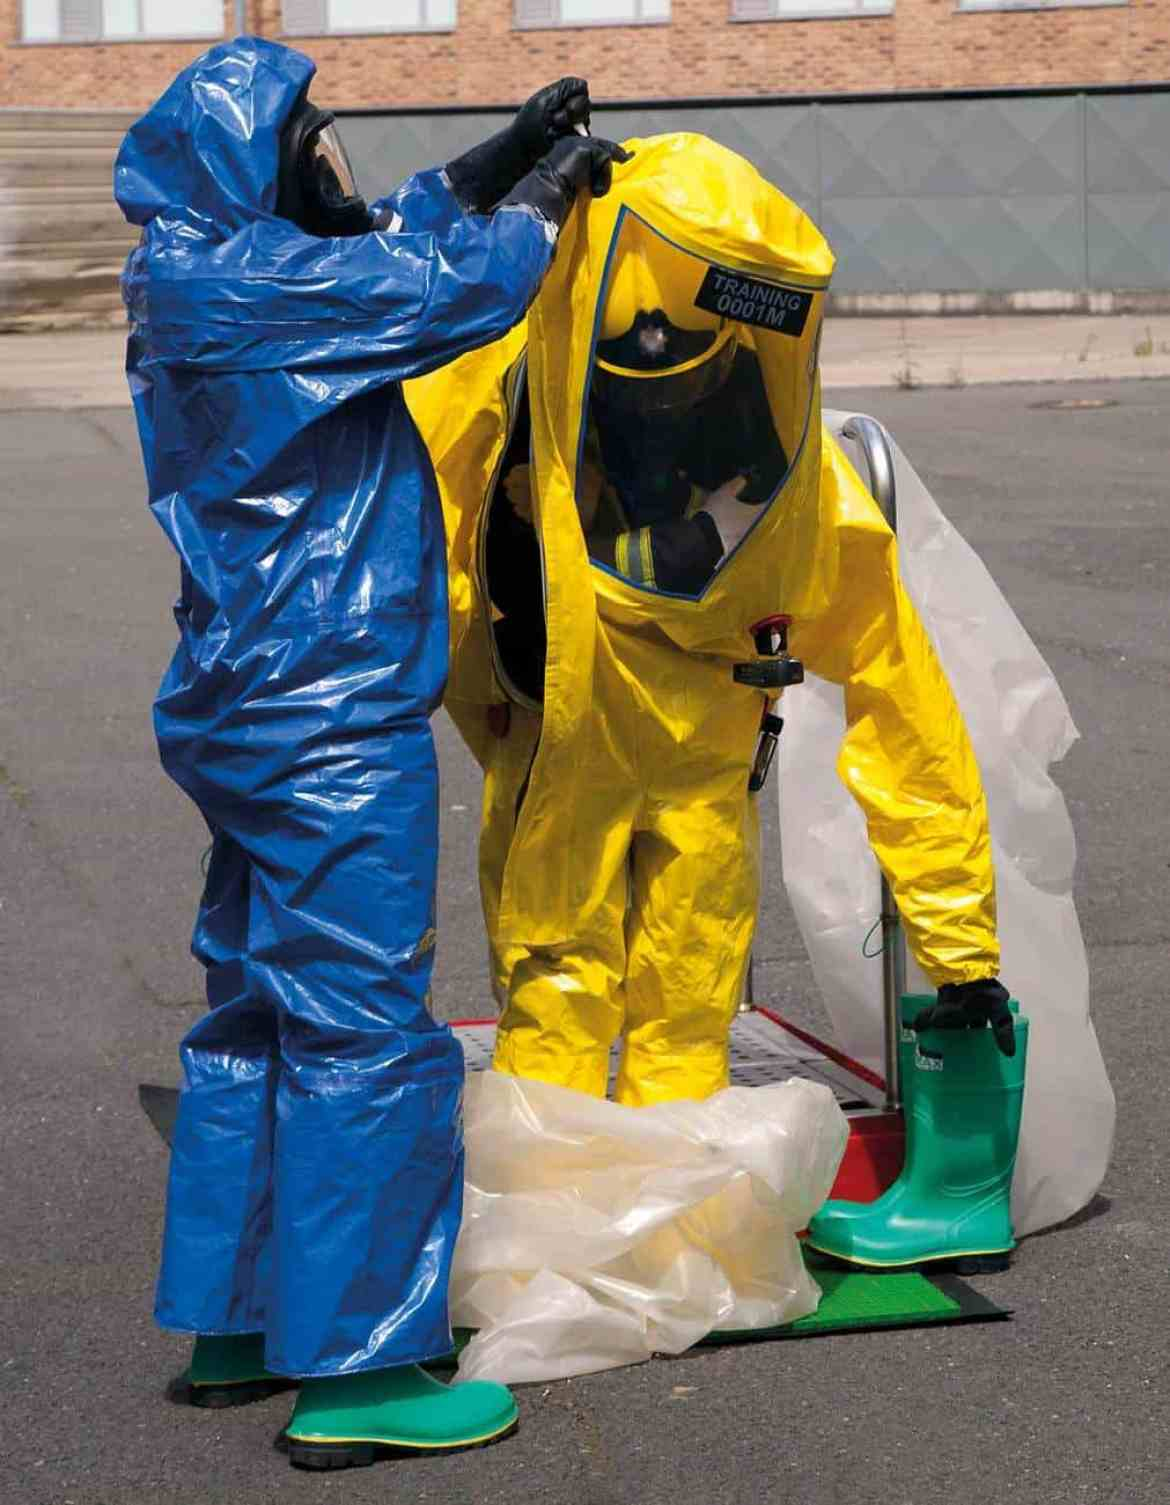 Simplified decon and doffing with single use suits.